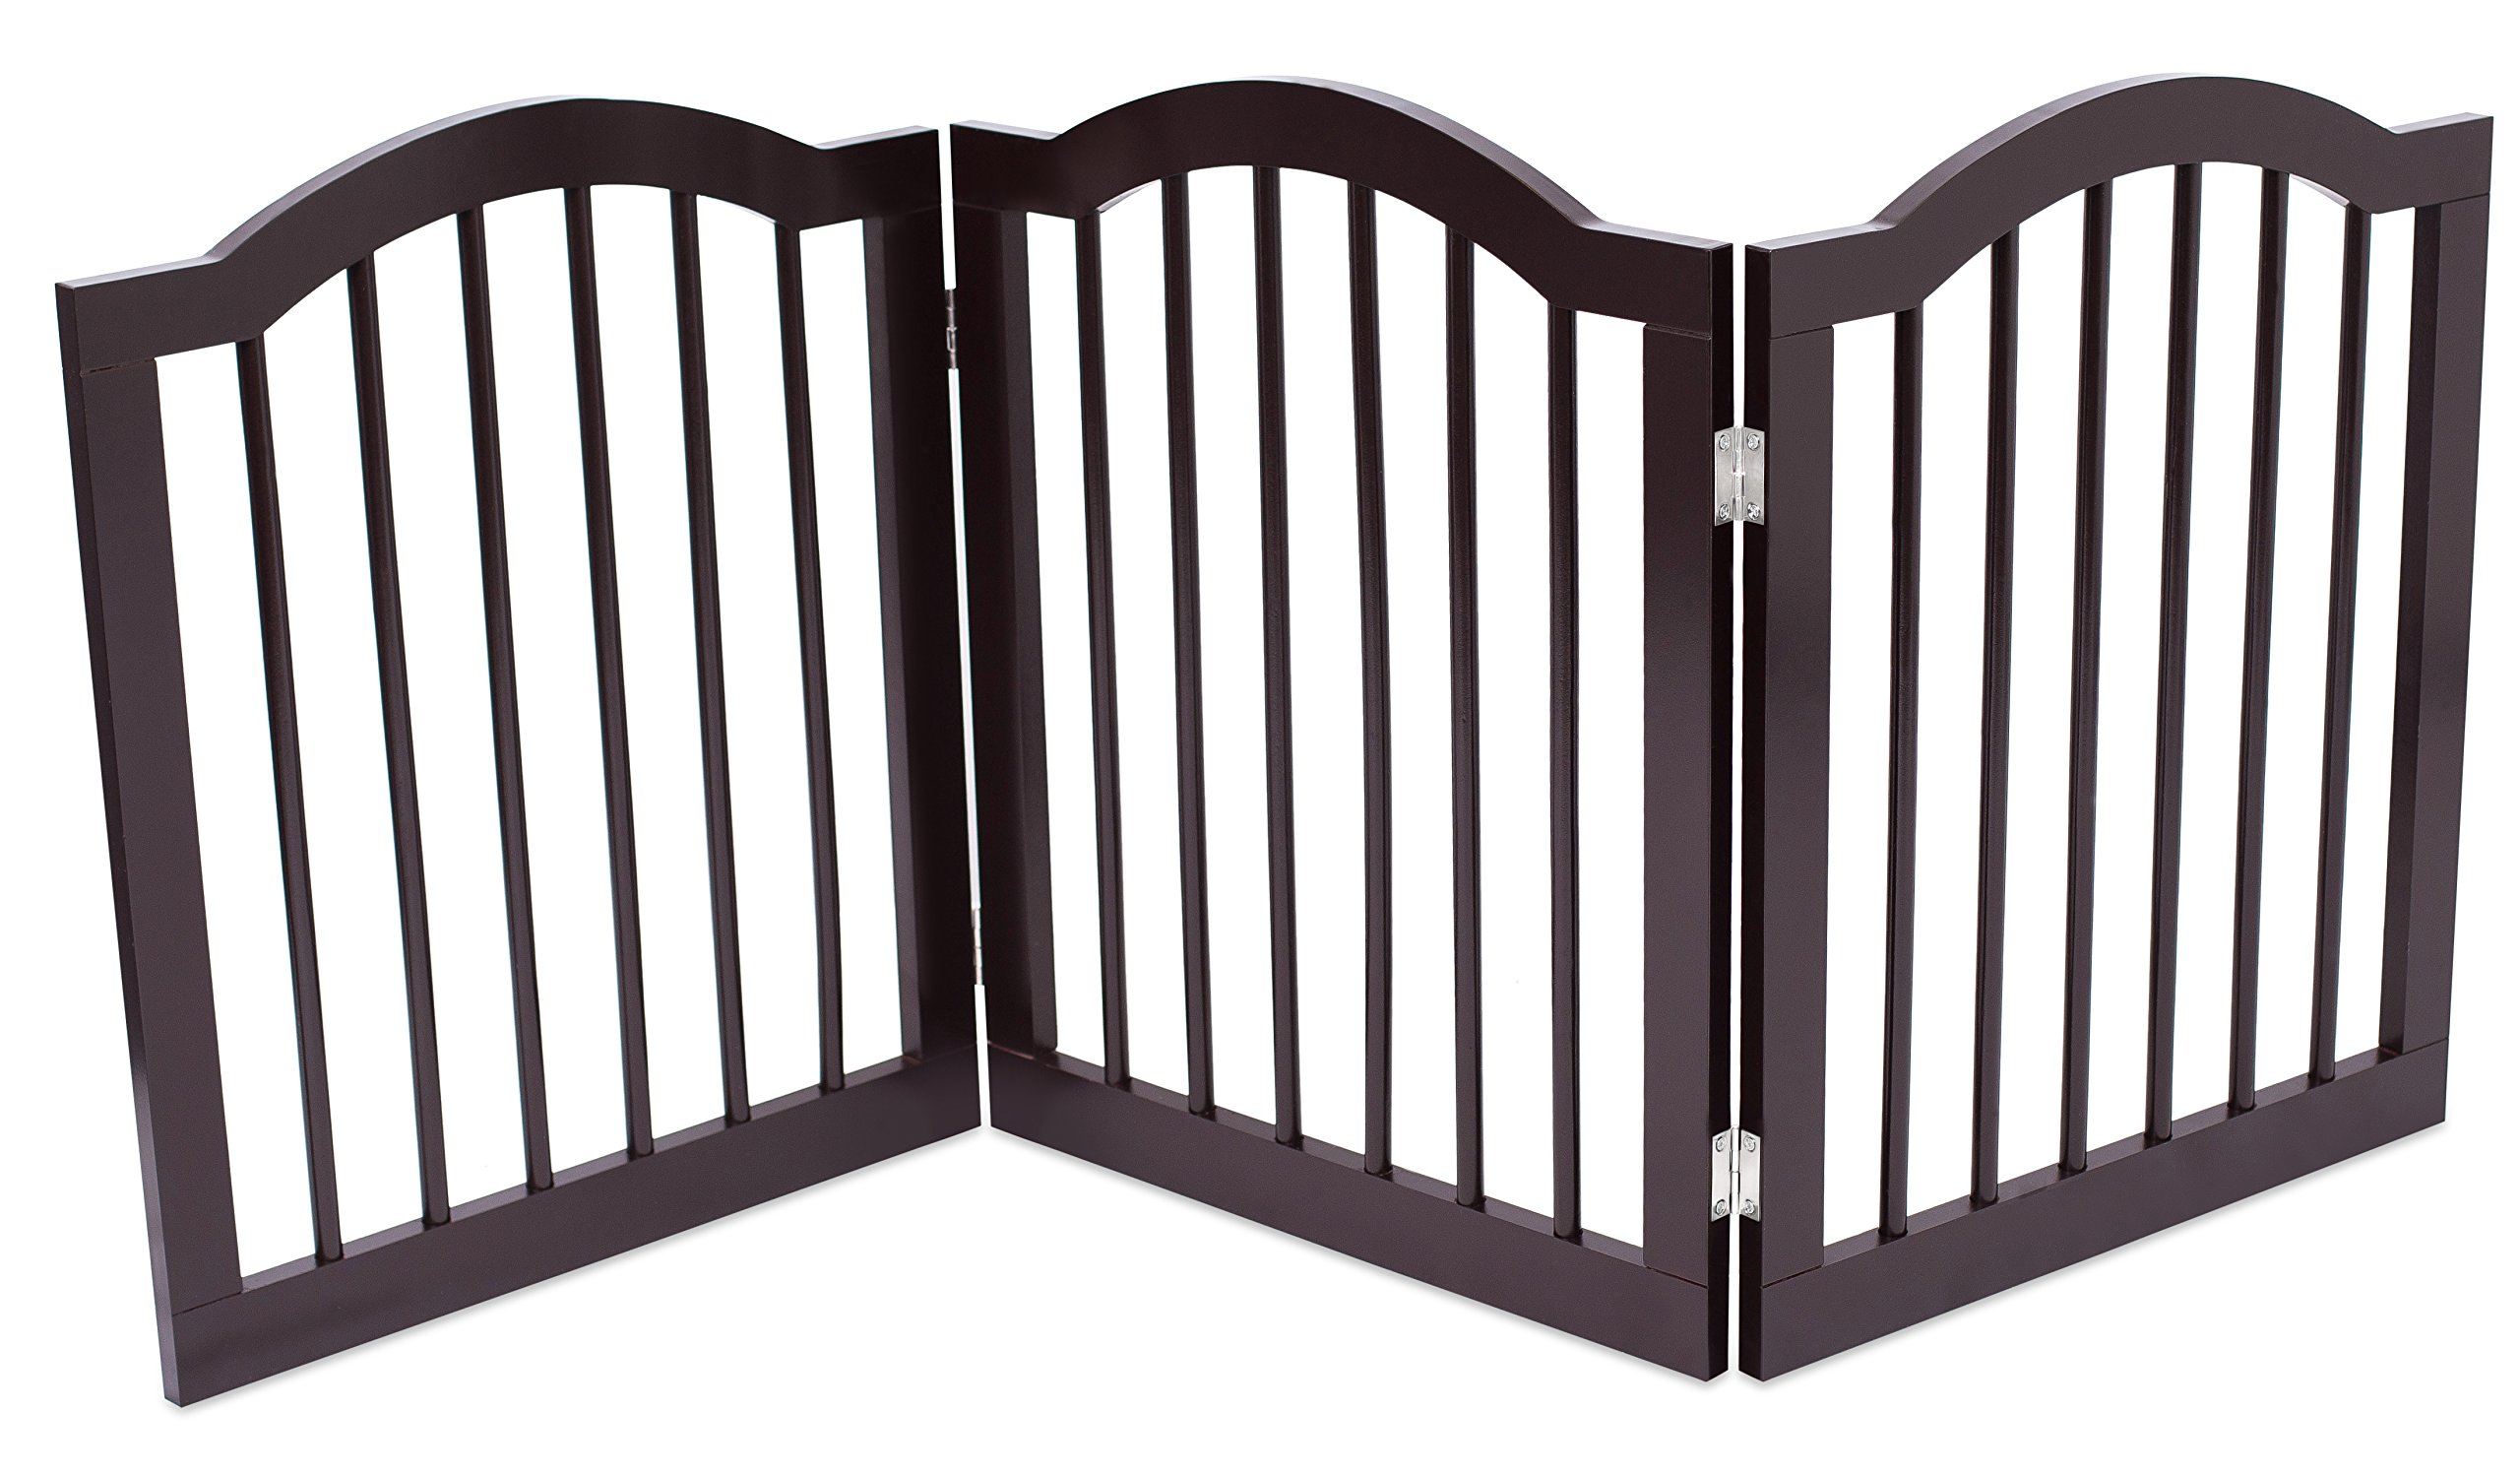 Internet's Best Pet Gate with Arched Top - 3 Panel - 24 Inch Step Over Fence - Free Standing Folding Z Shape Indoor Doorway Hall Stairs Dog Puppy Gate - Fully Assembled - Espresso - MDF by Internet's Best